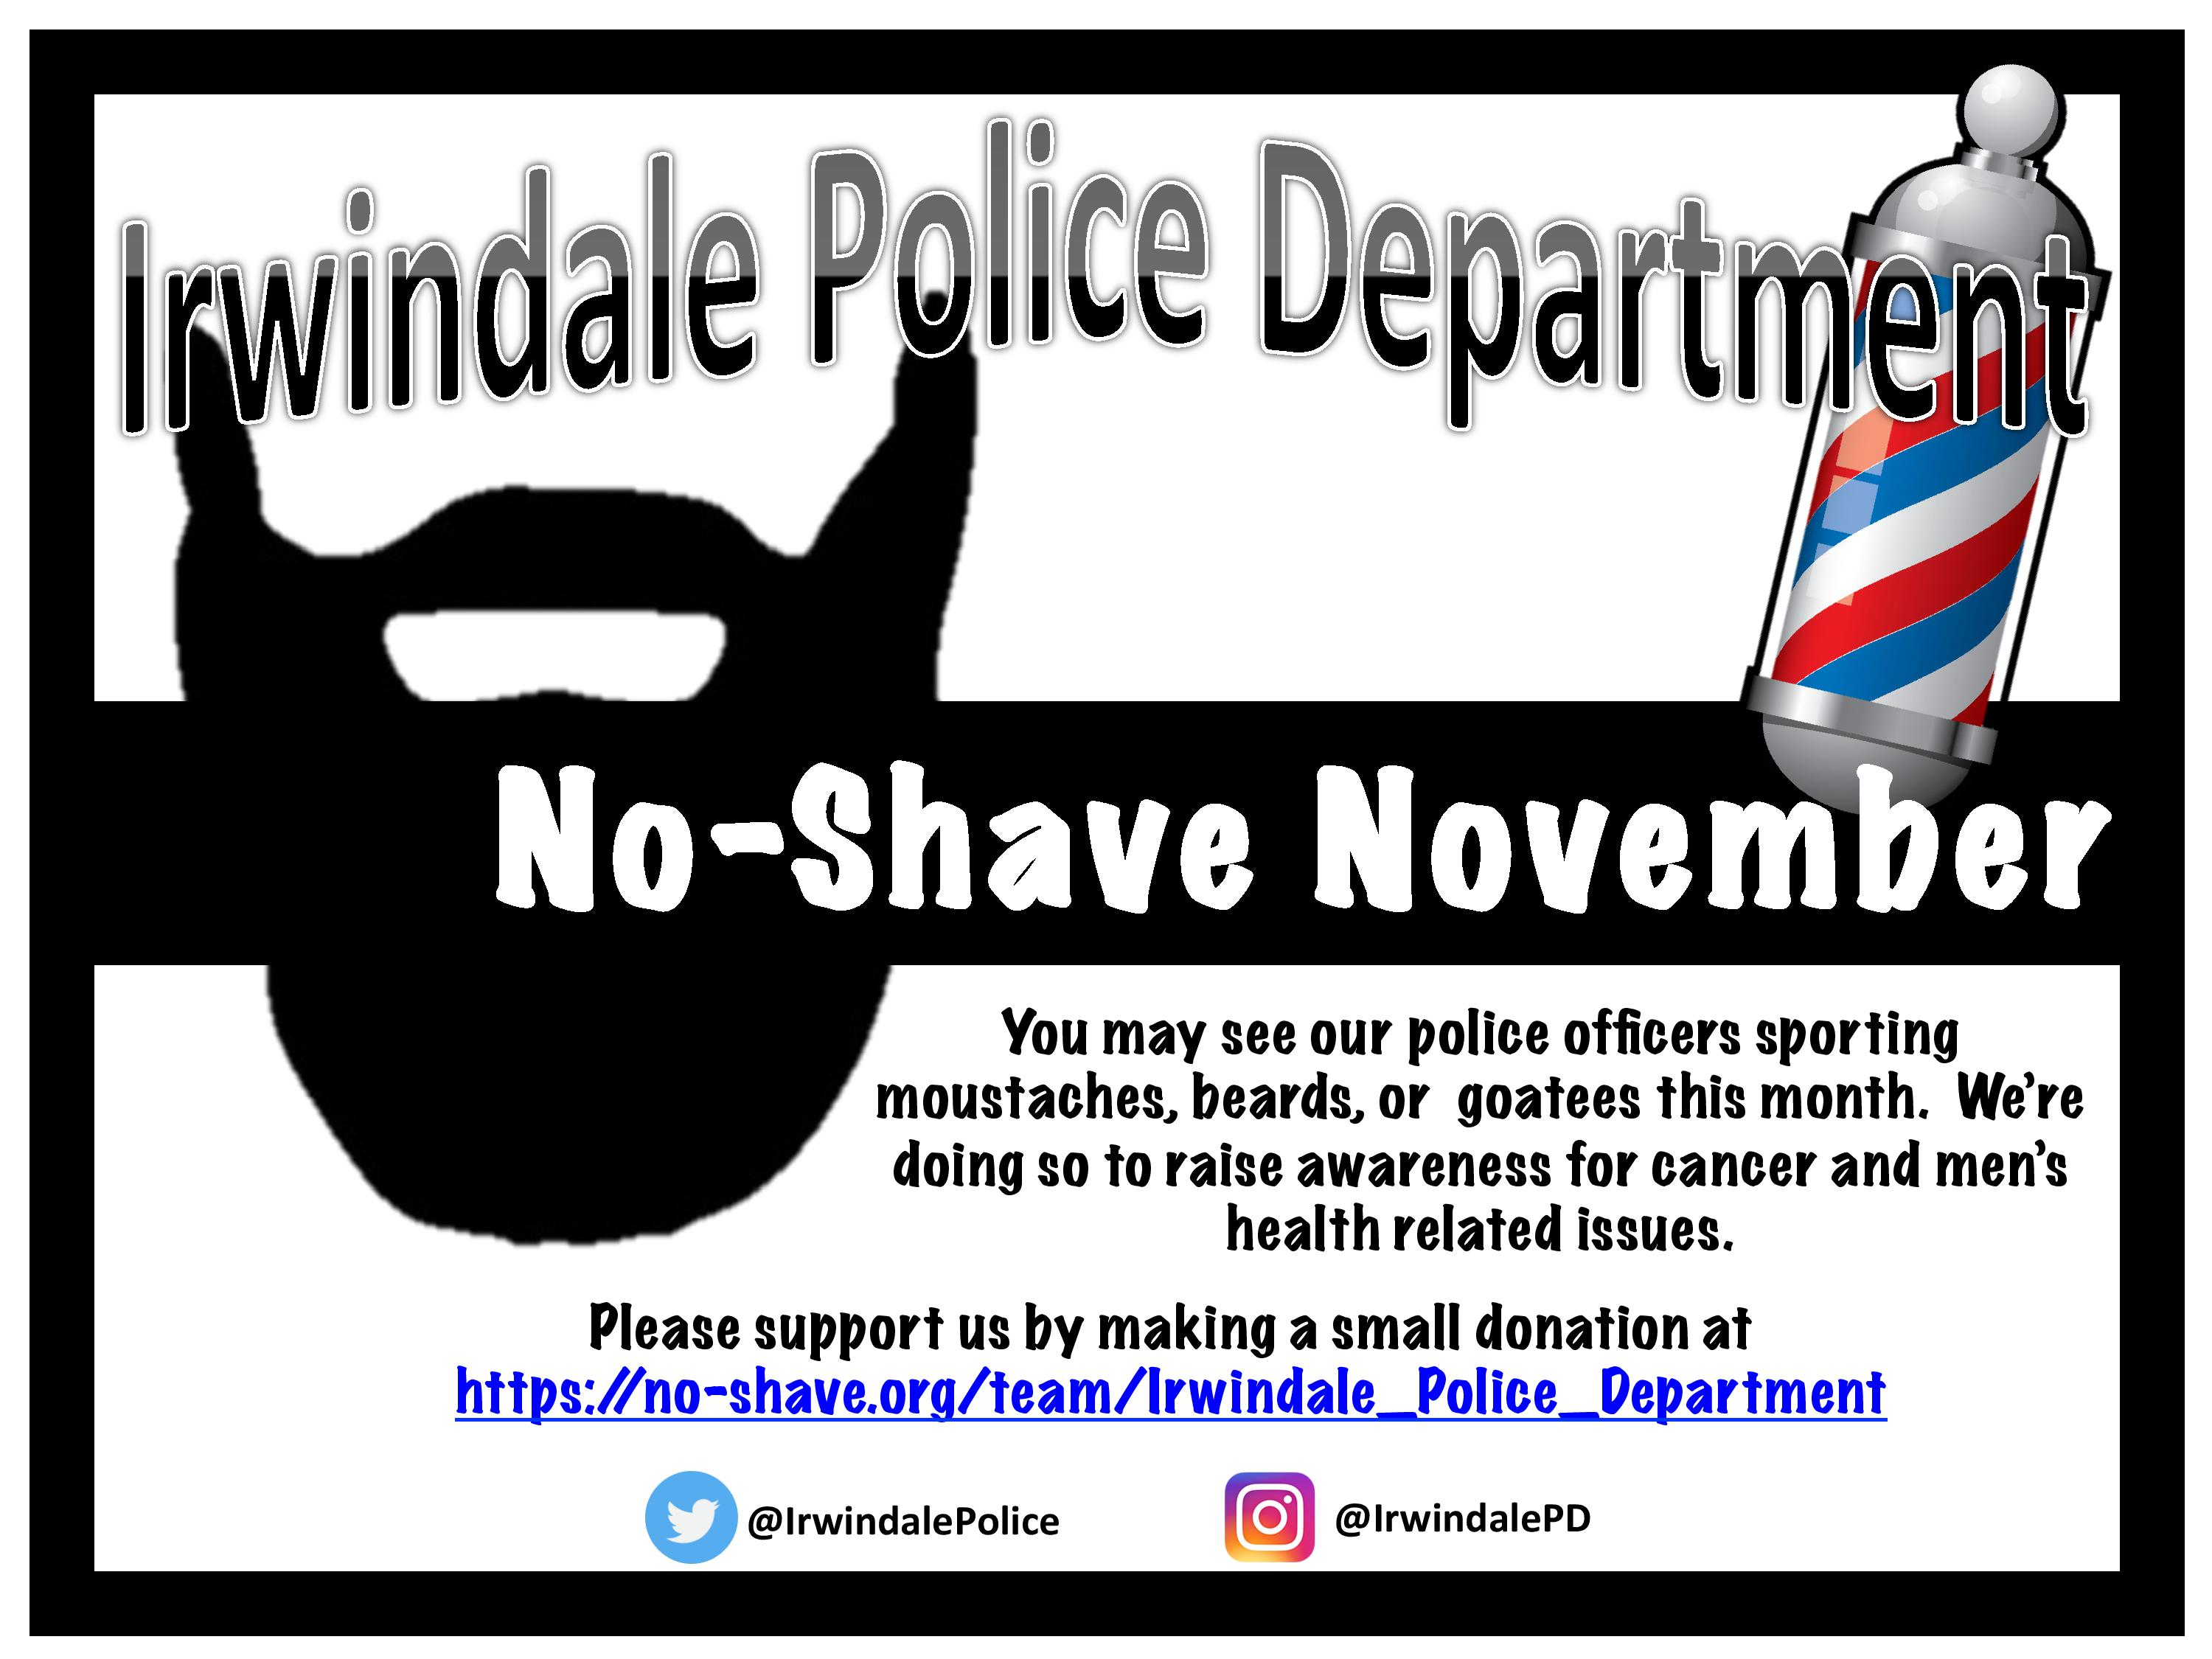 Irwindale Police Department No Shave November 2017